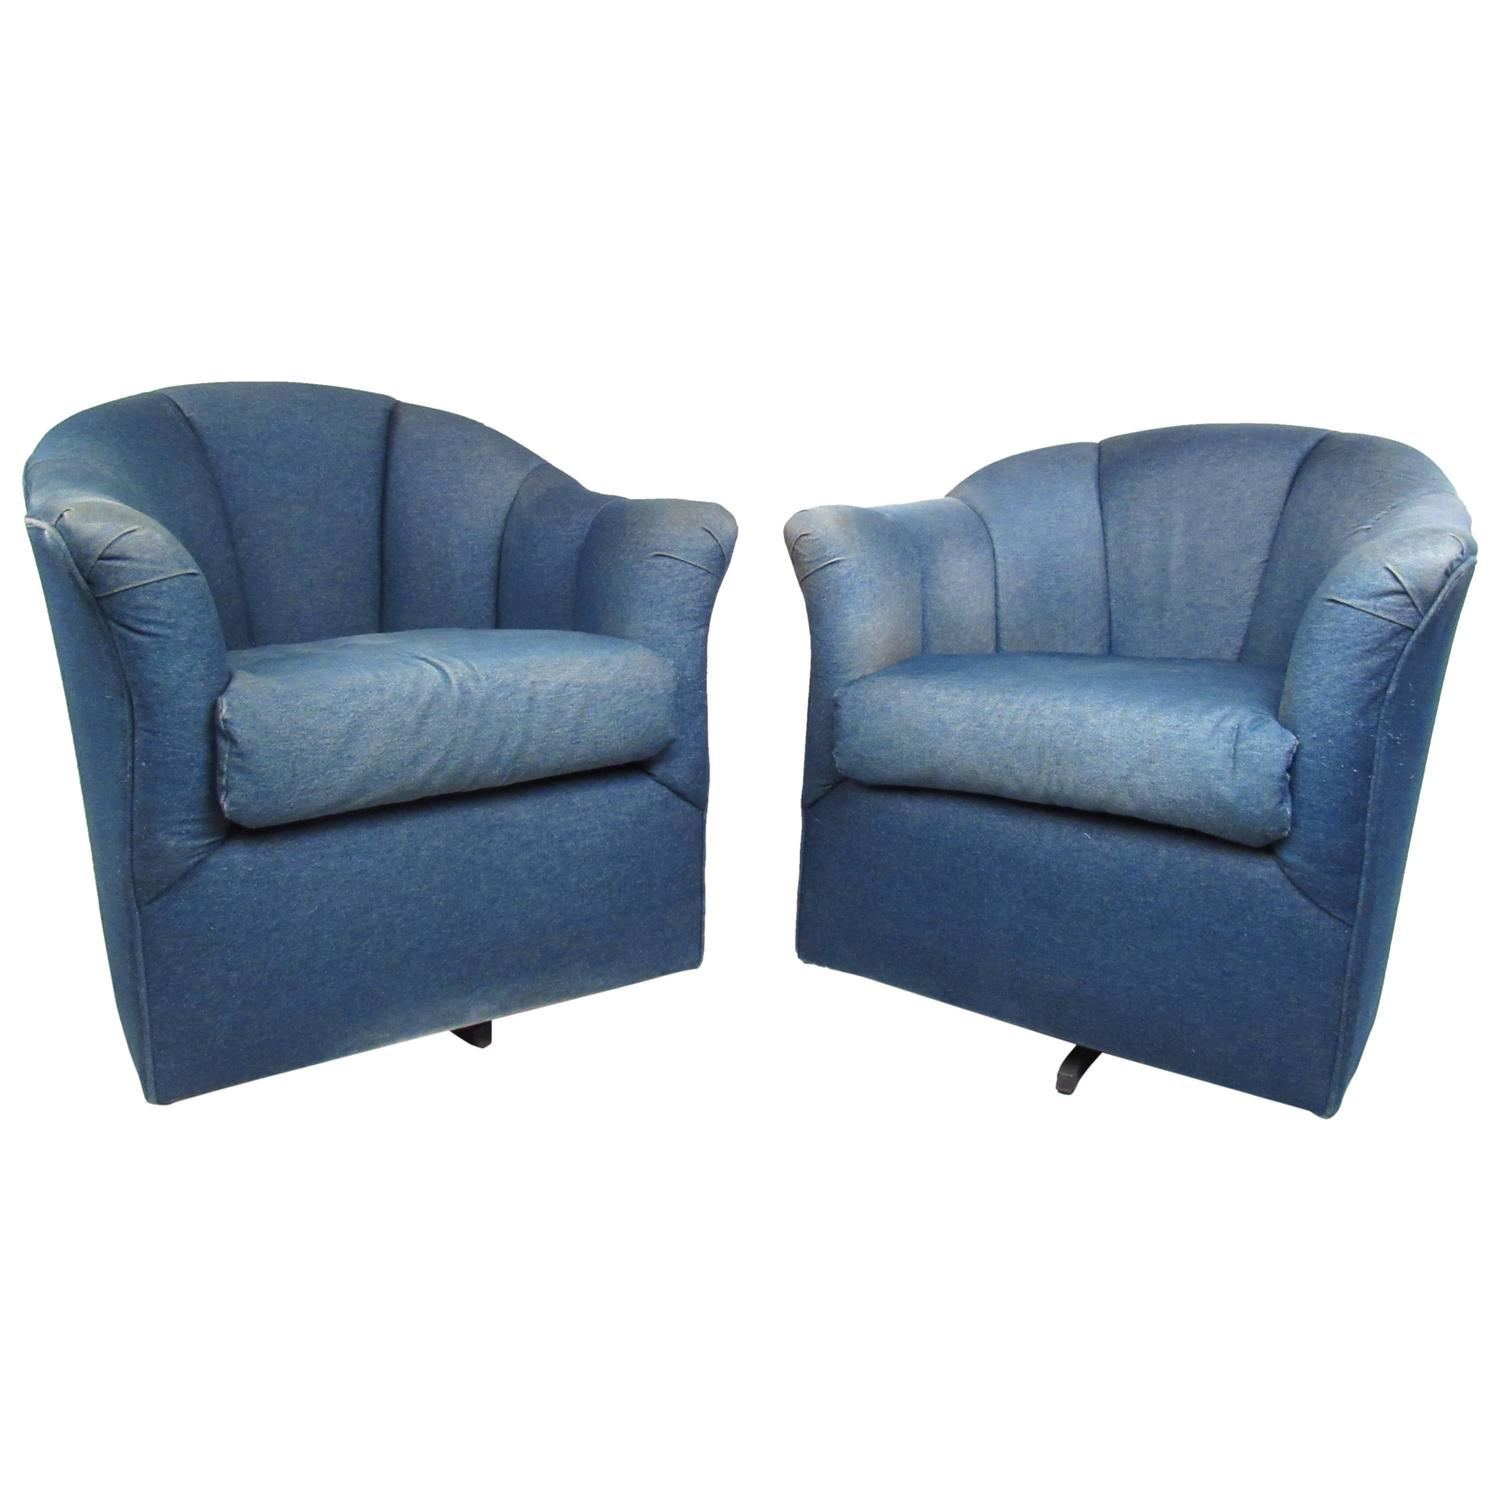 Pair Of Mid Century Modern Arne Jacobsen Style Swivel Lounge Chairs For  Sale At 1stdibs